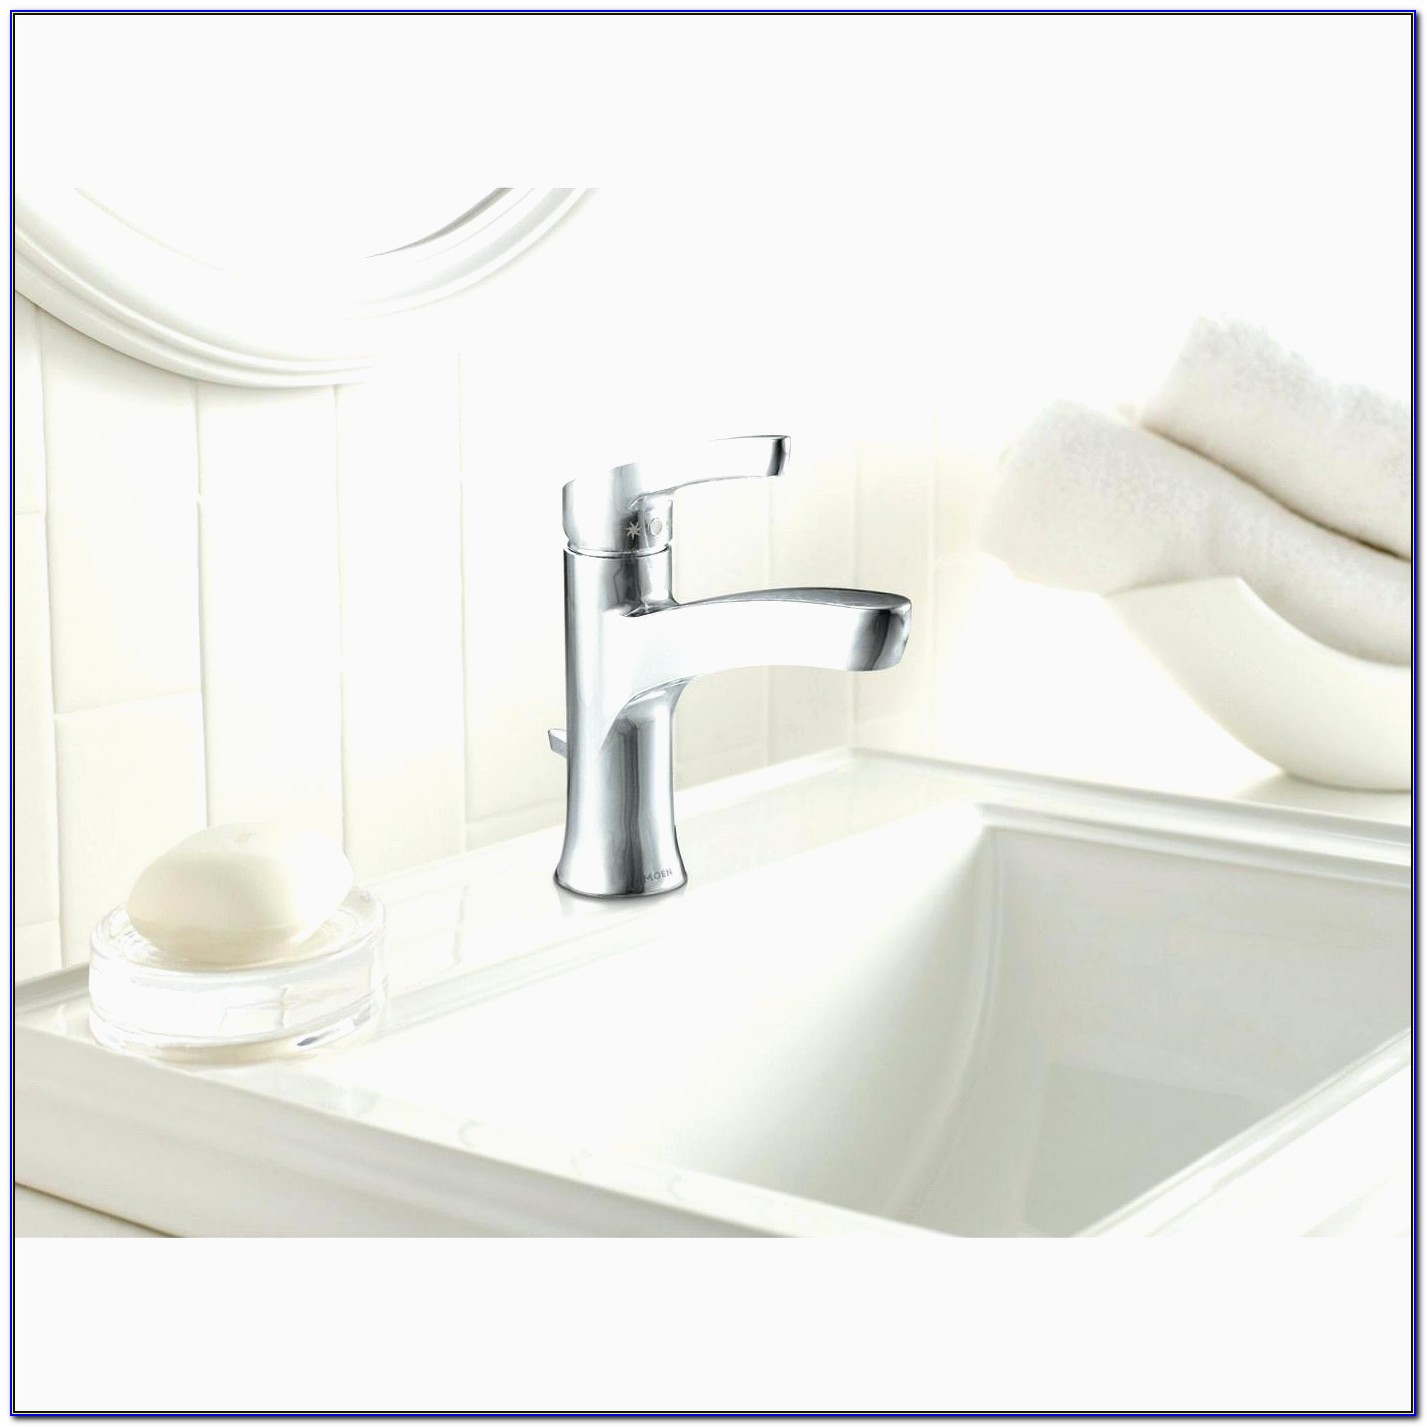 Moen Eva Single Handle Bathroom Faucet